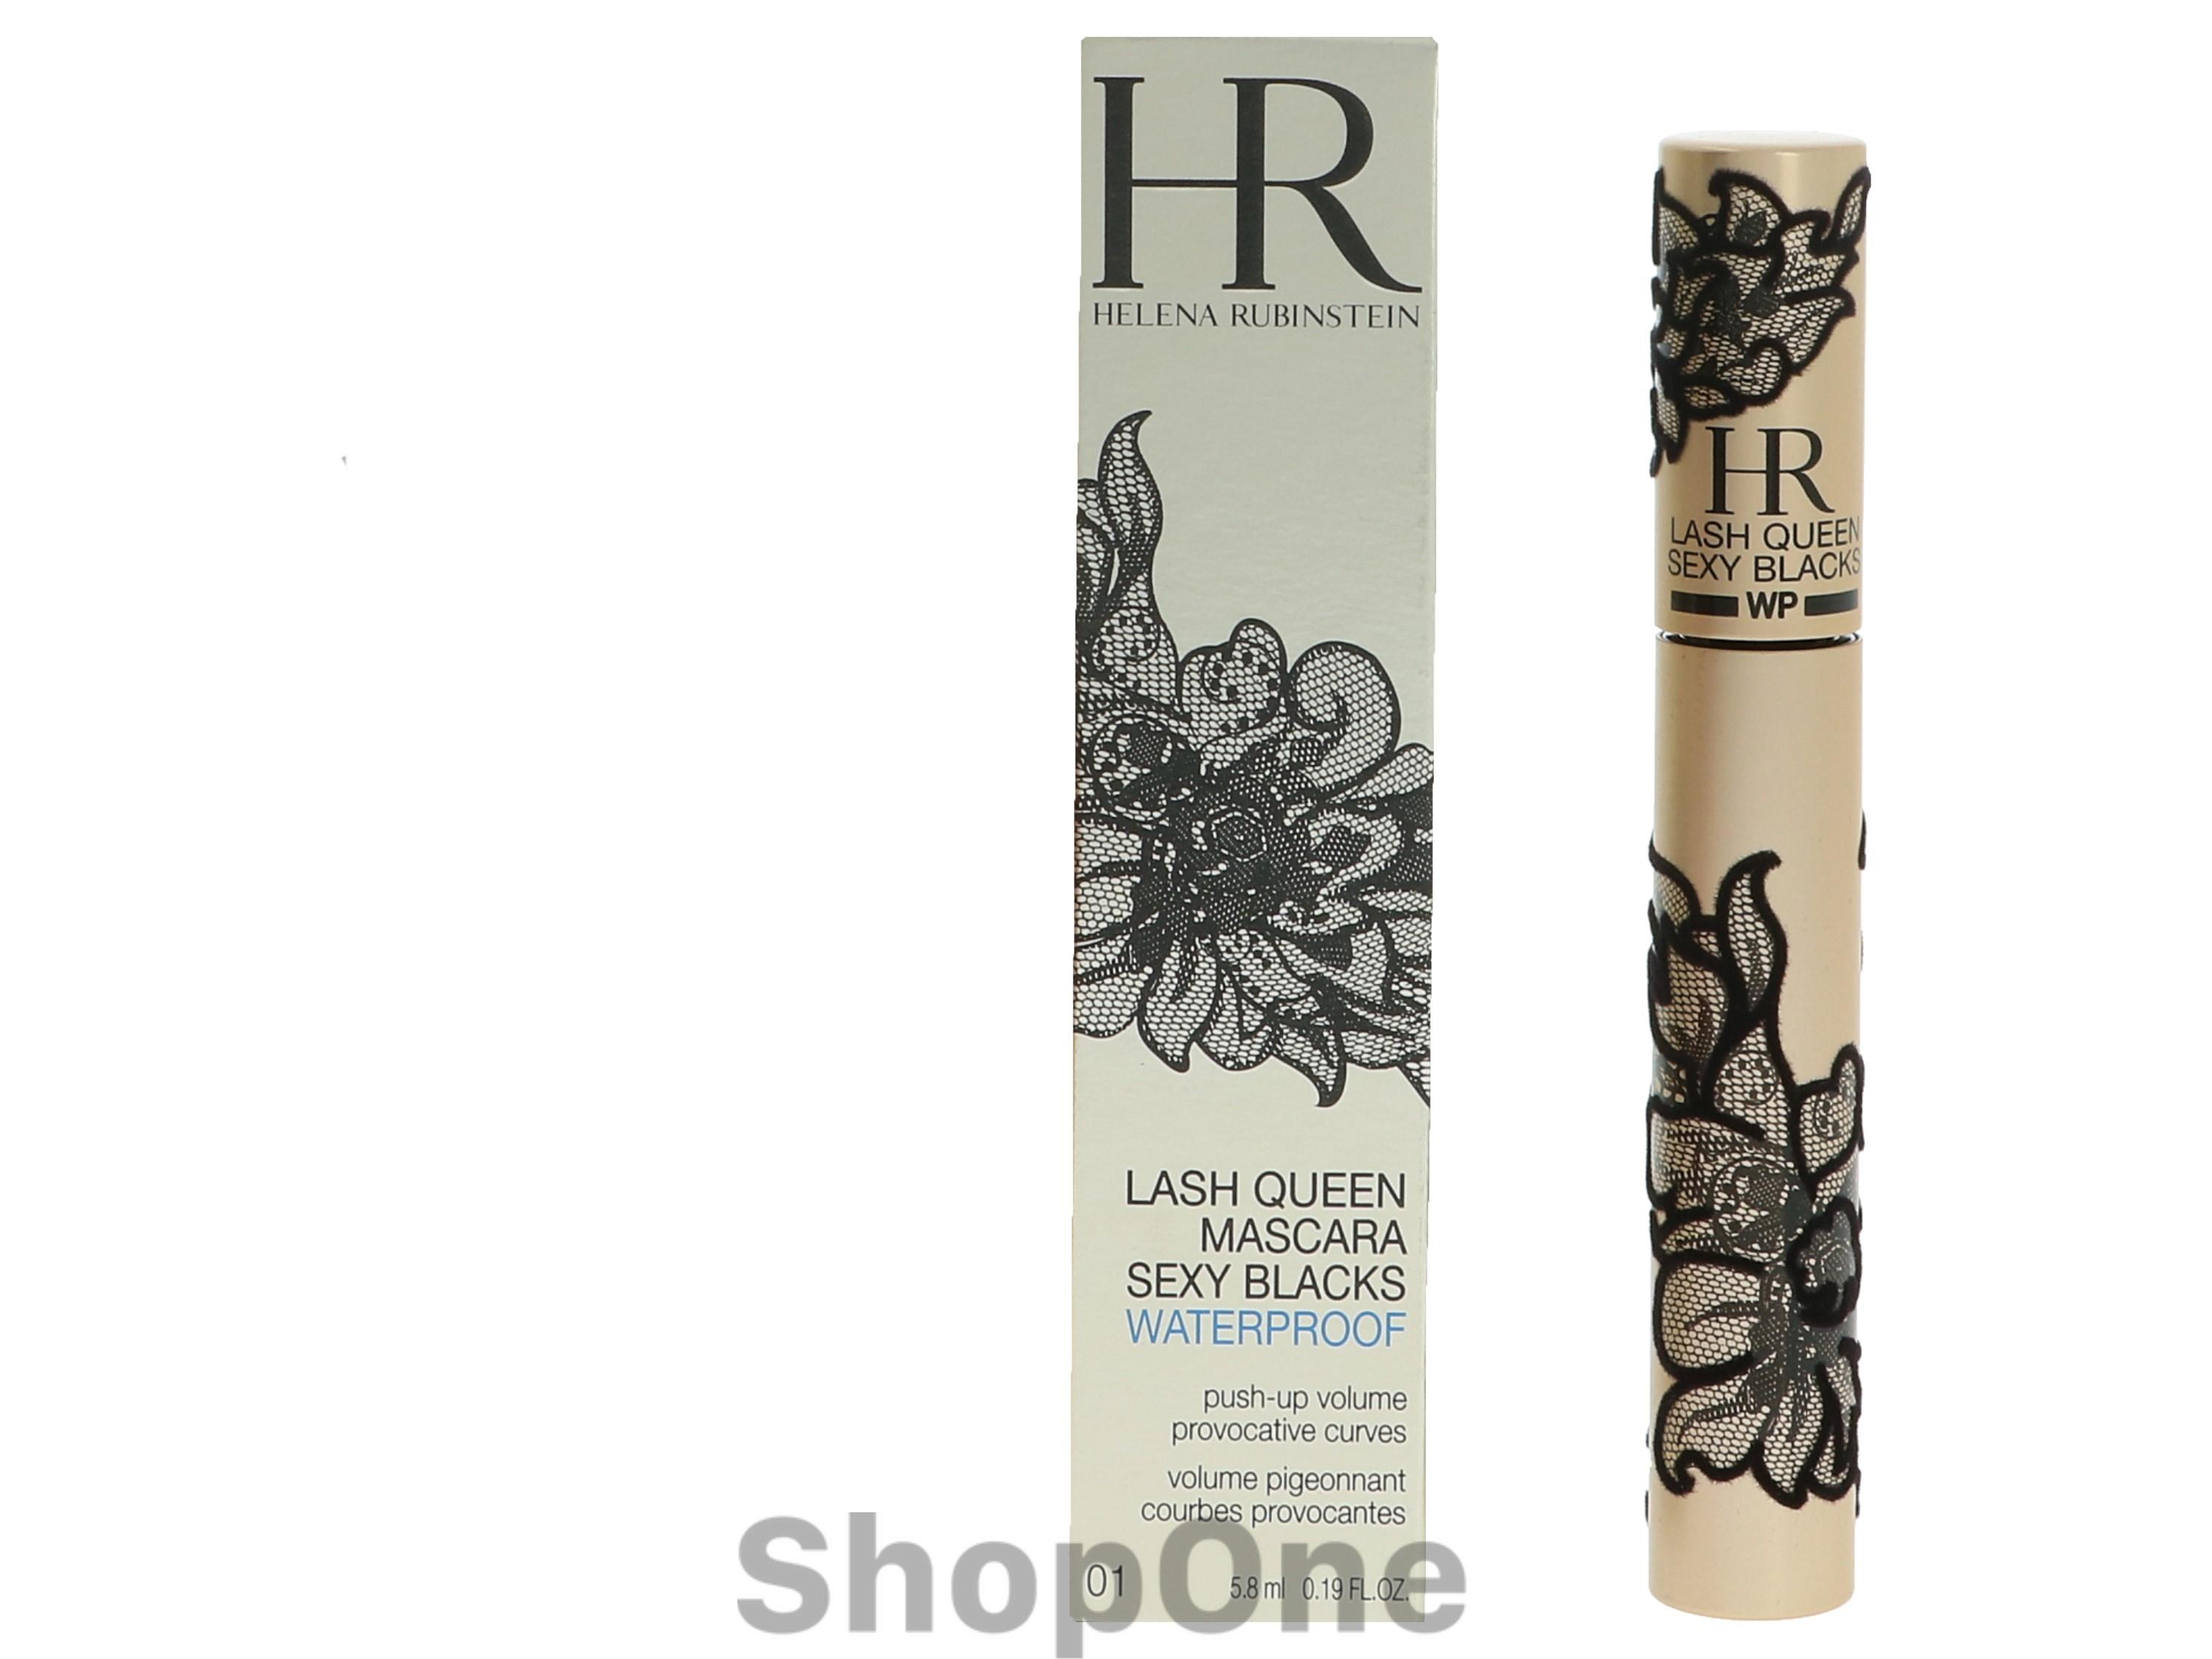 Image of   Hr Lash Queen Sexy Blacks Waterproof Mascara 5 ml fra Helena Rubinstein